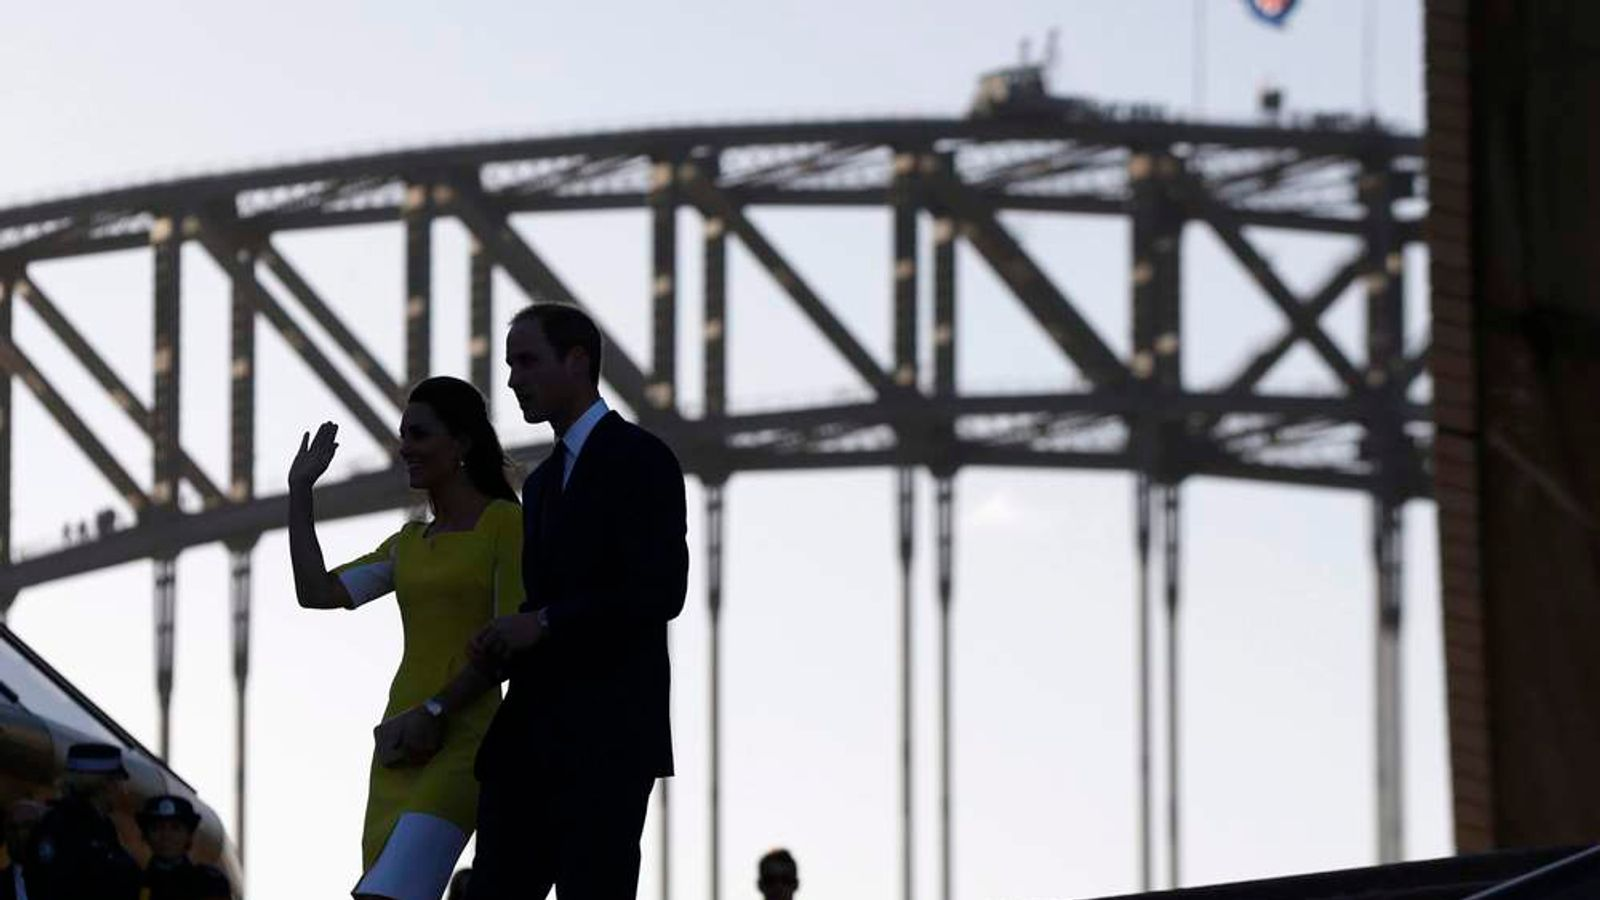 Britain's Prince William and Catherine, Duchess of Cambridge, are silhouetted against the Sydney Harbour Bridge